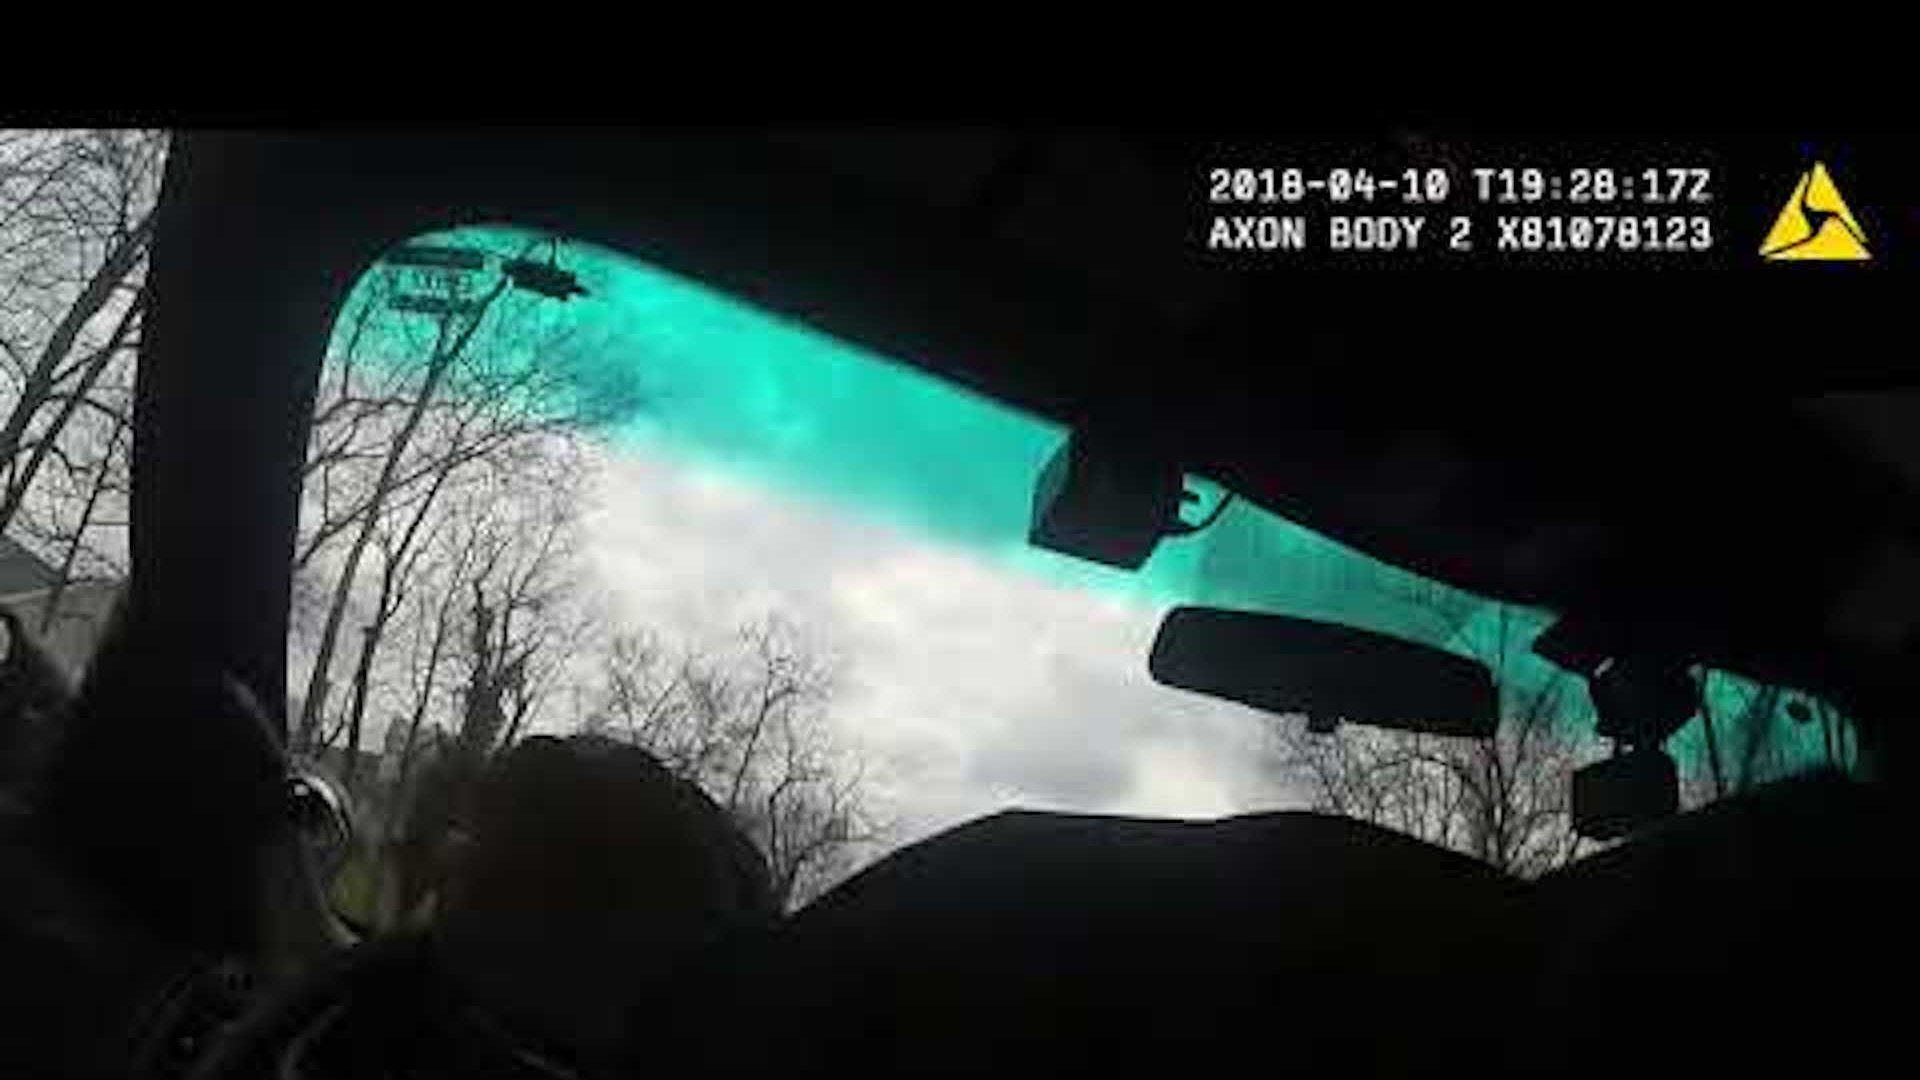 Police responding to dying student's 911 call stayed in their patrol car, body cam videos show